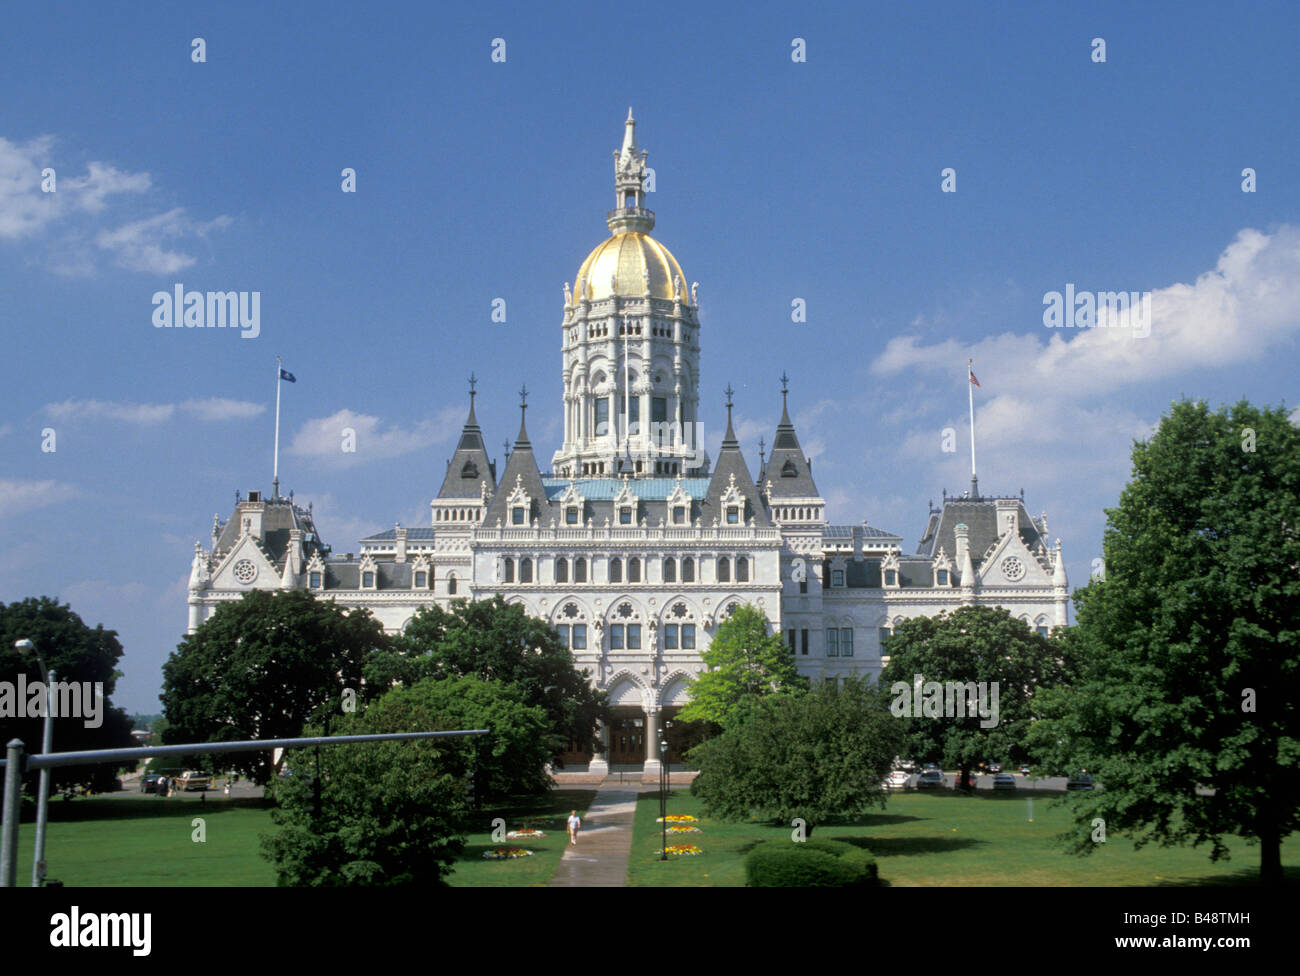 State Capitol building Hartford Connecticut - Stock Image